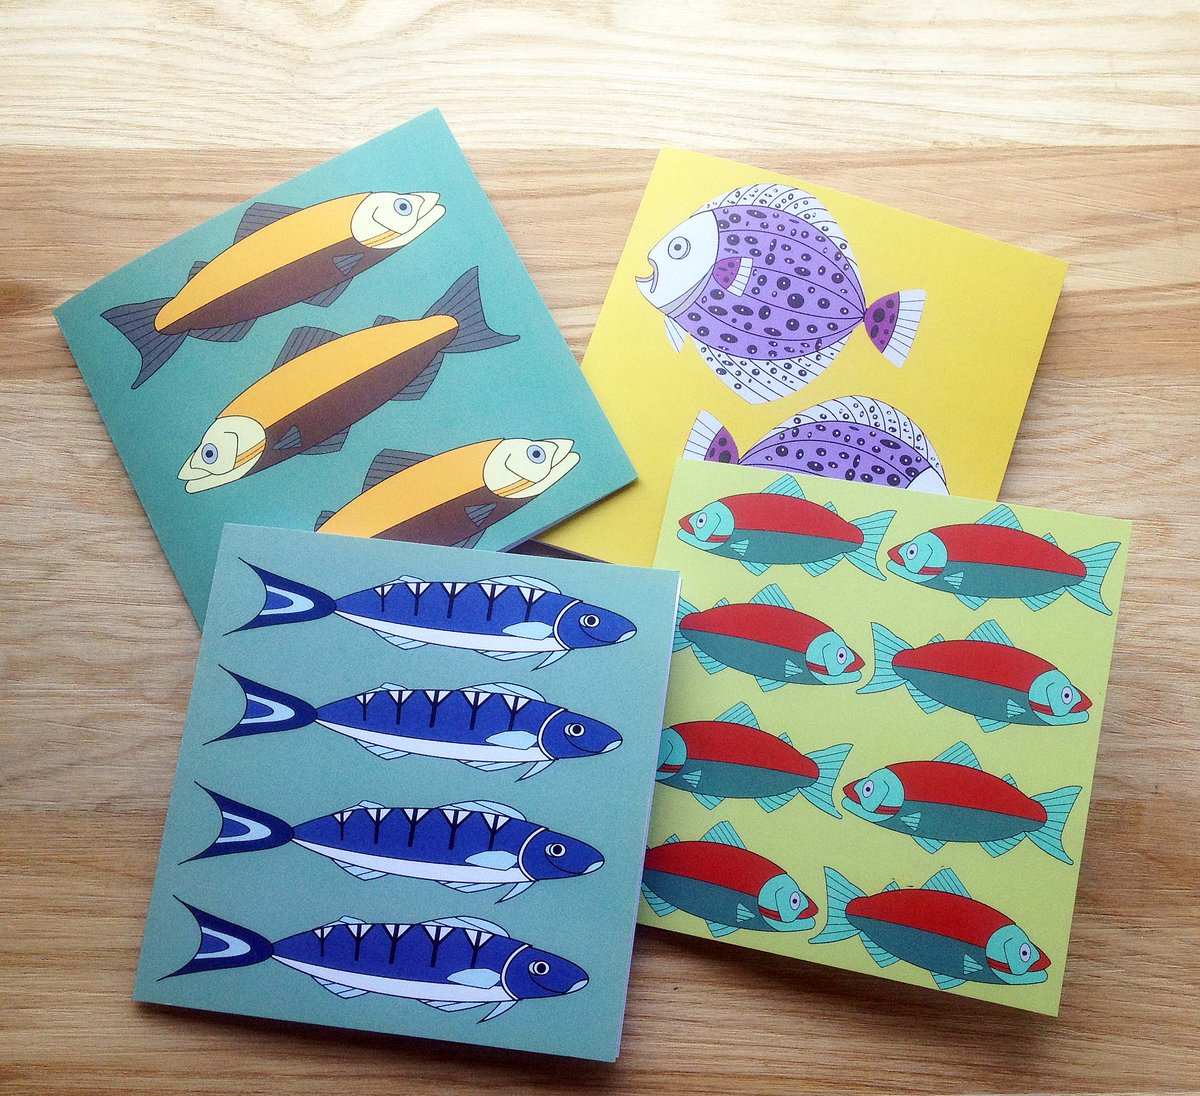 FathersDay CraftBizParty Elevenseshour RTmeBB Greetingcards Shopindie Smallbiz Cats Birds Fish Stationery